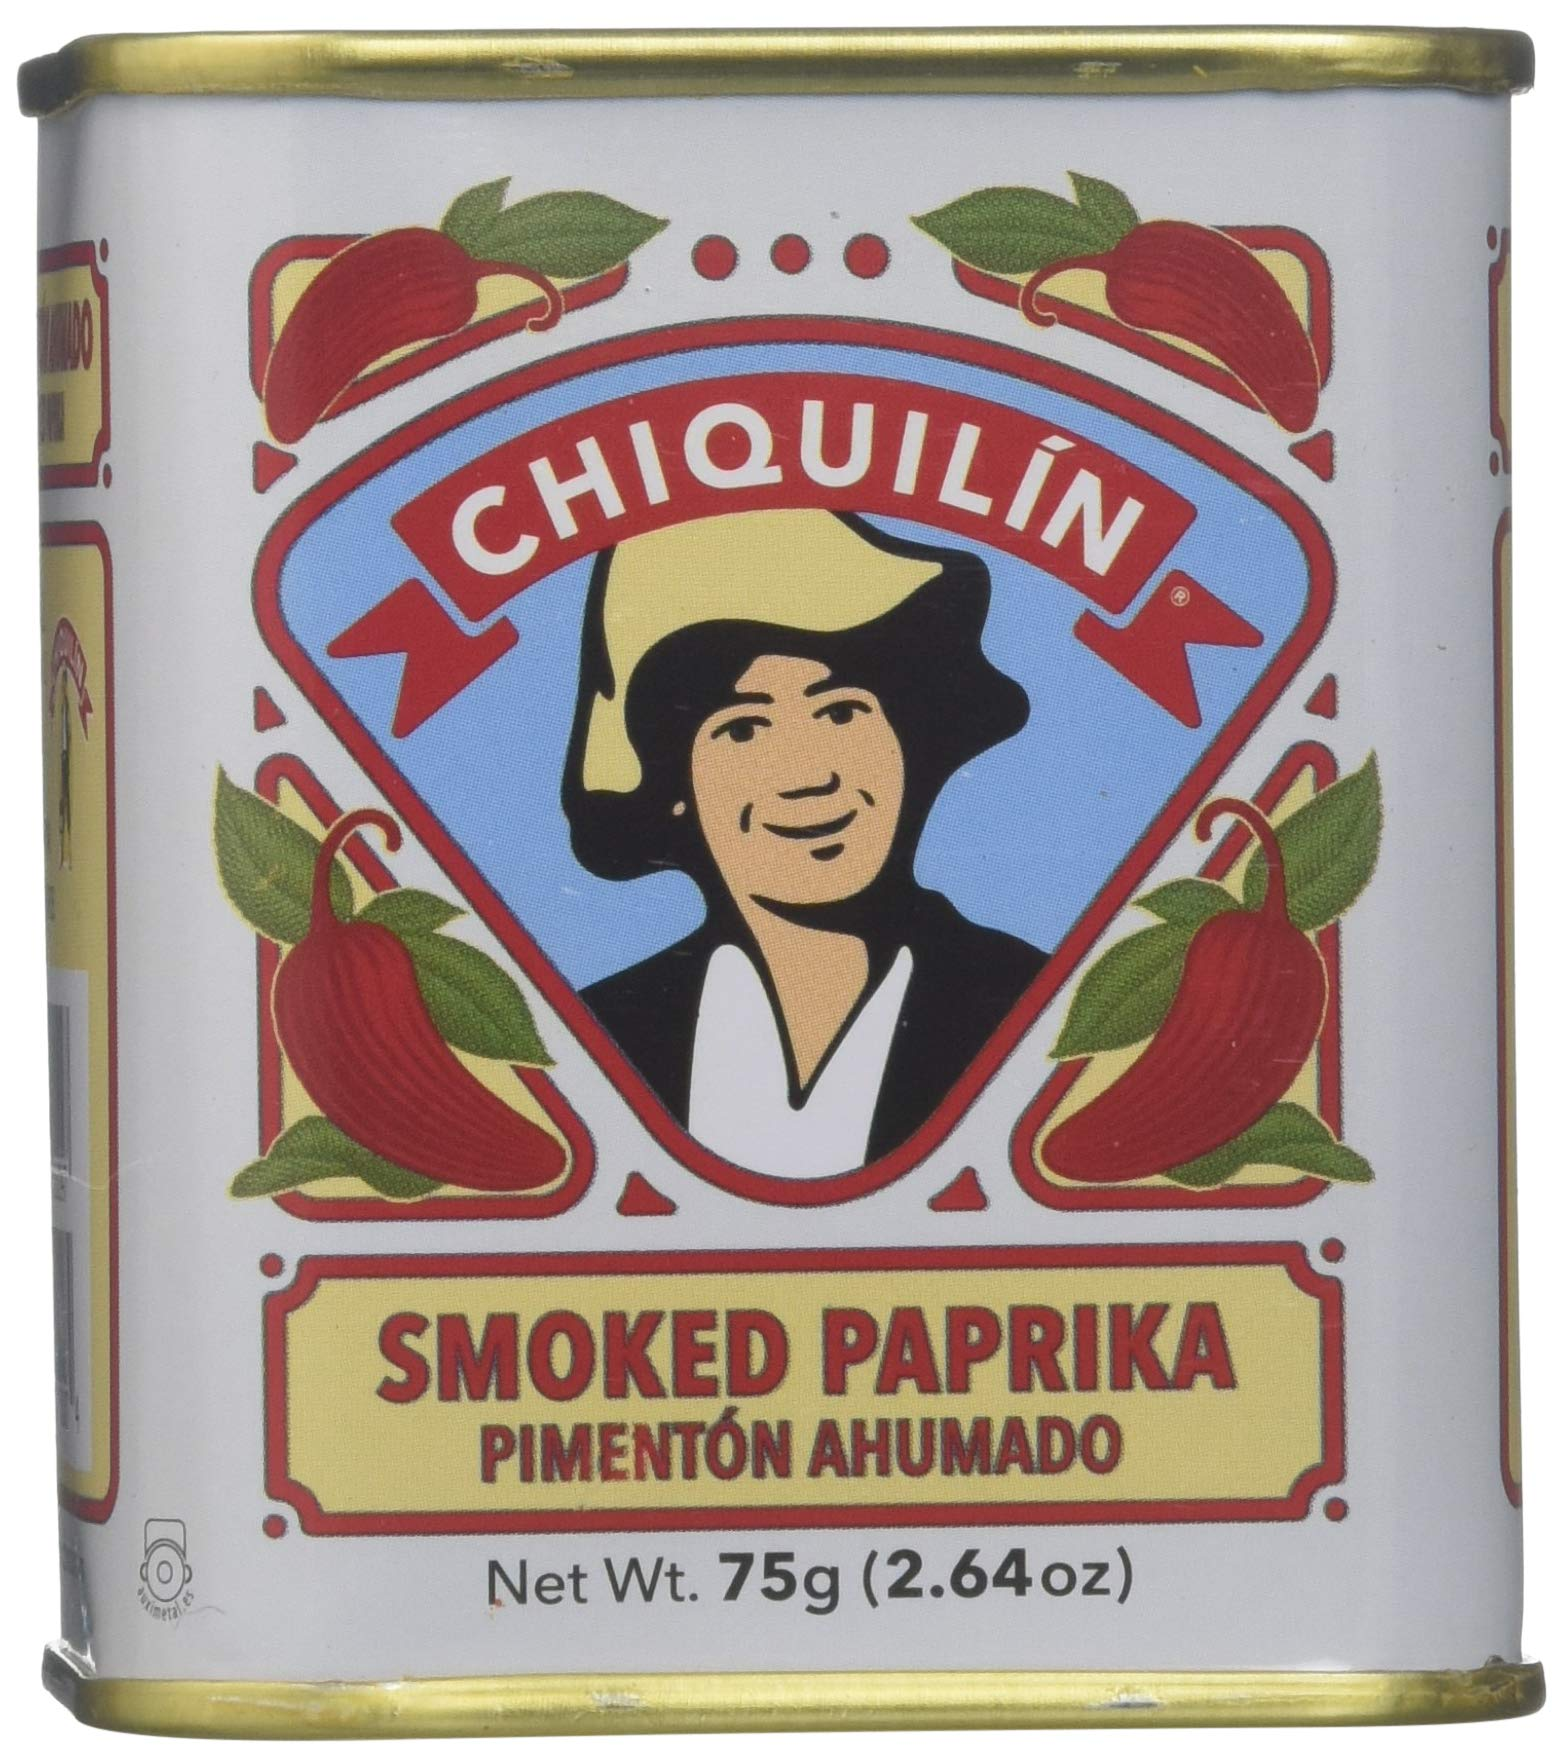 Chiquilin Smoked Paprika, 2.64 oz - Pack of 12